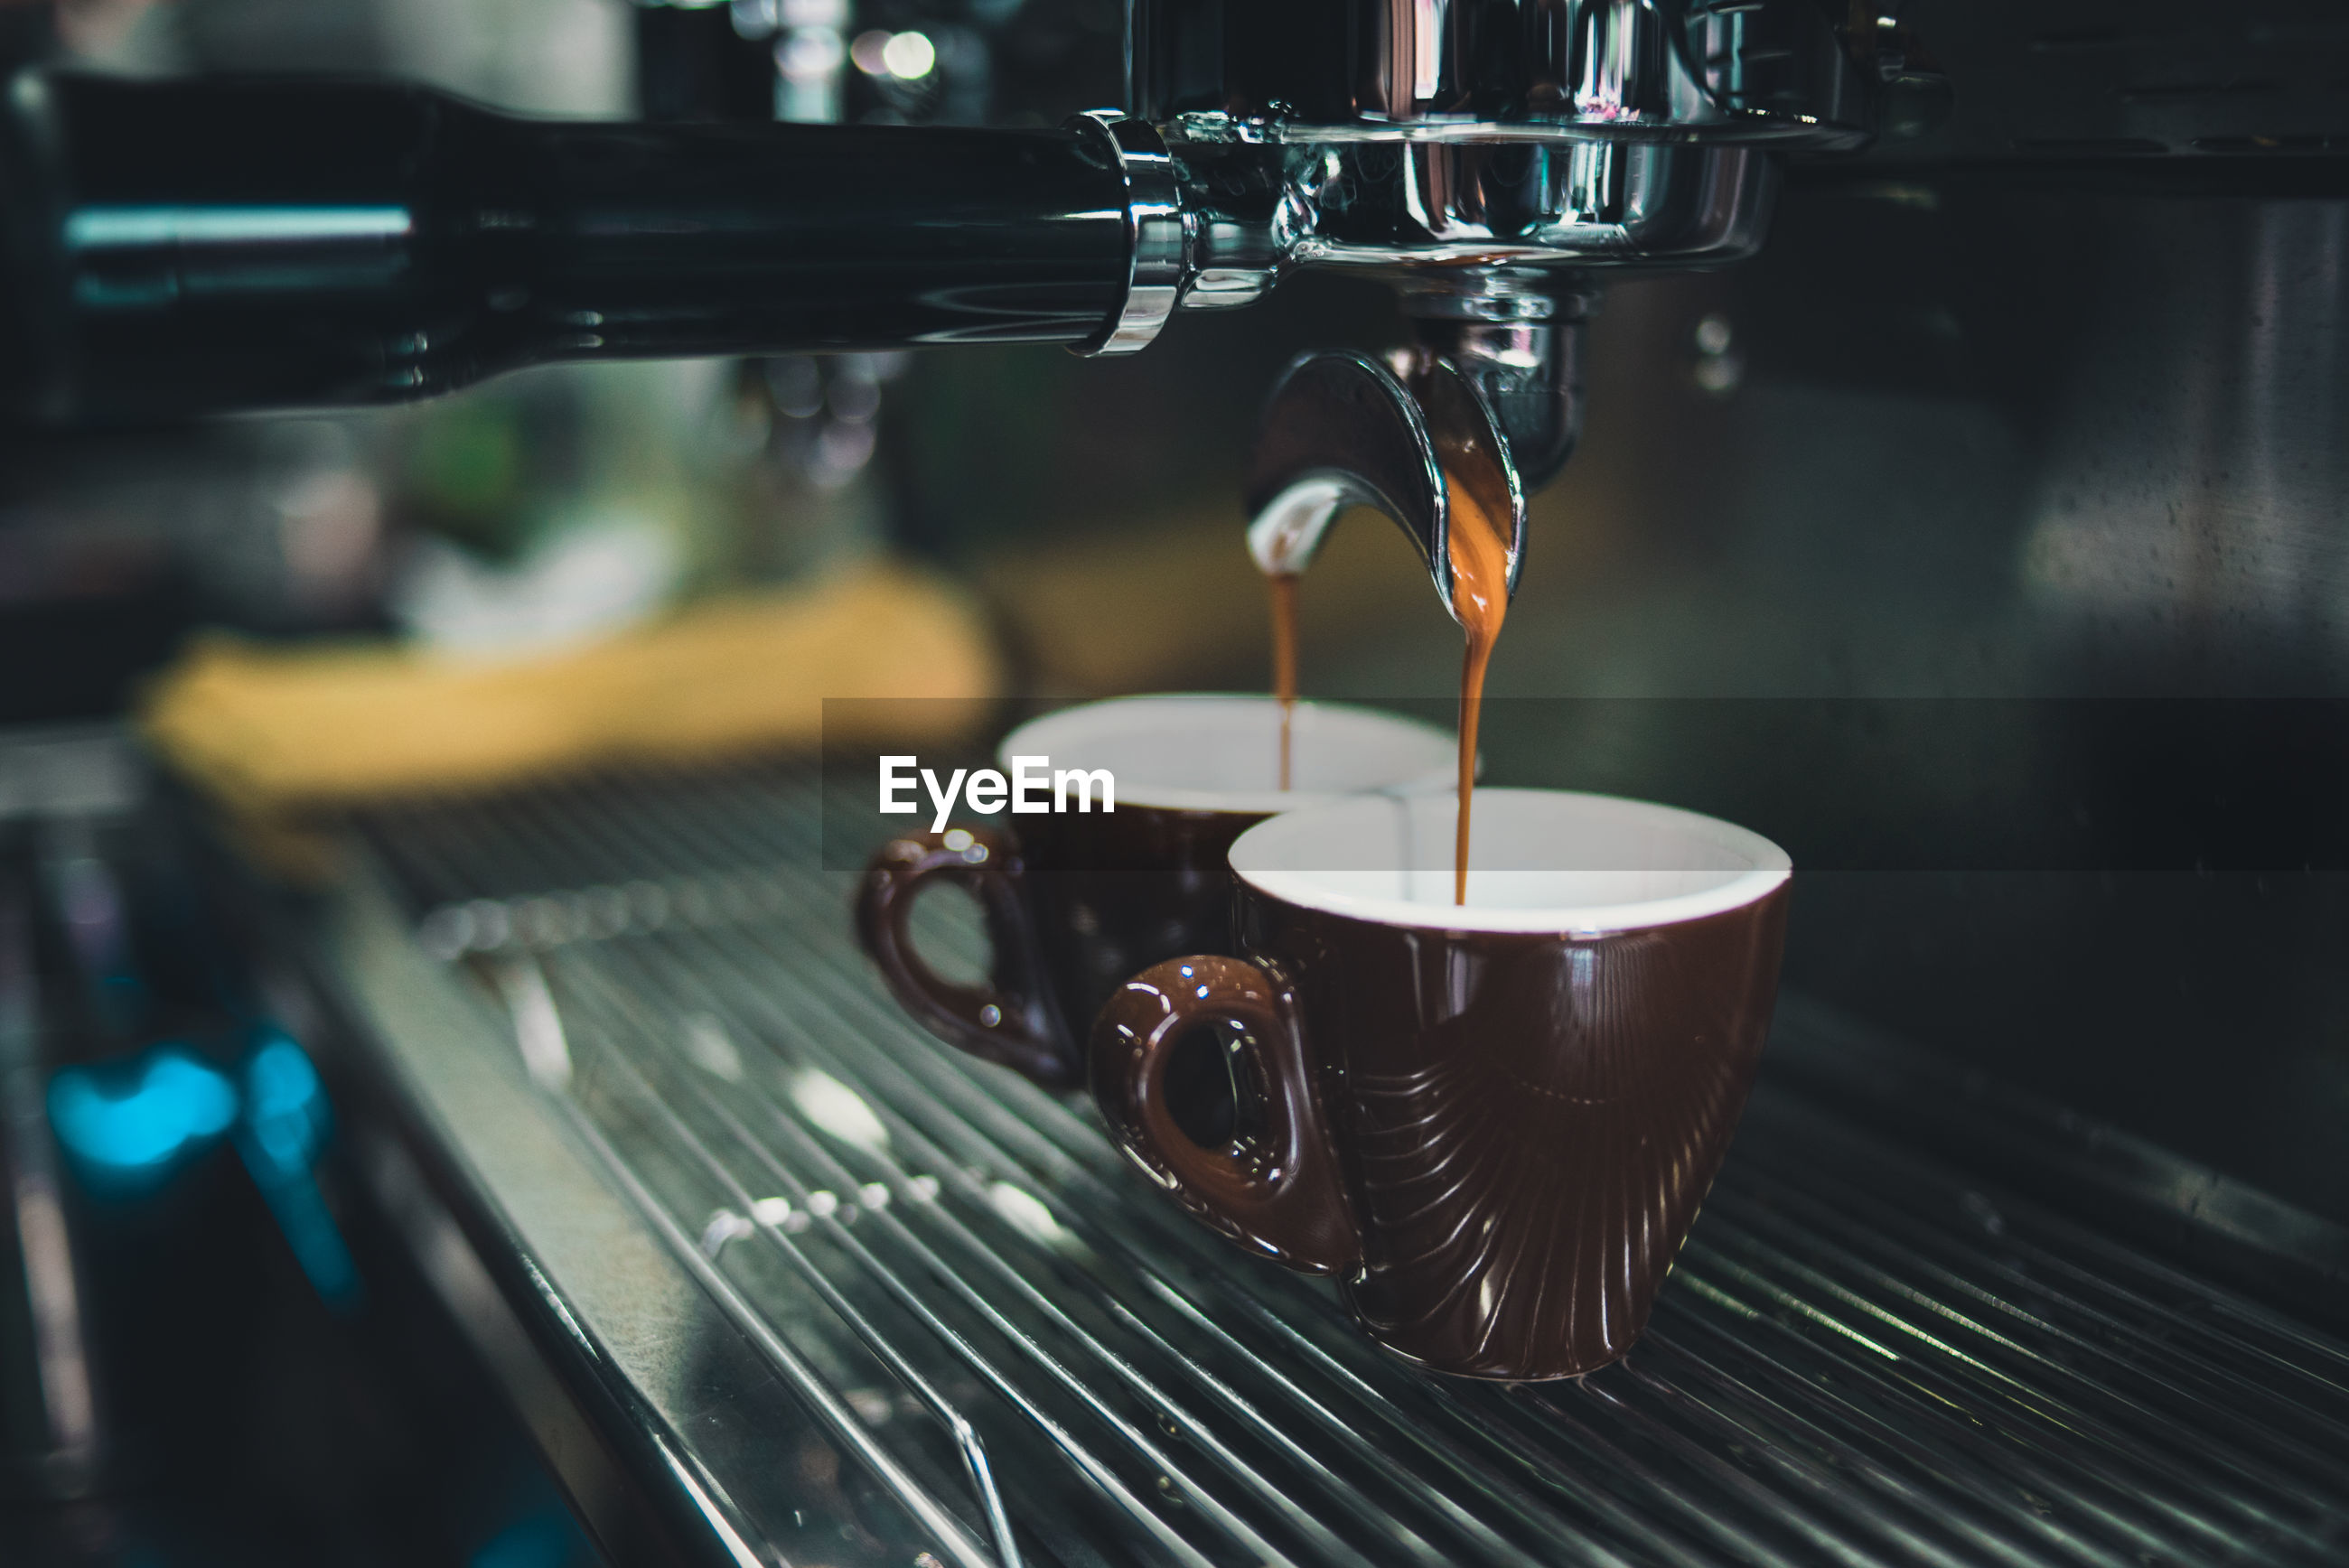 Close-up of coffee cup on espresso maker in cafe